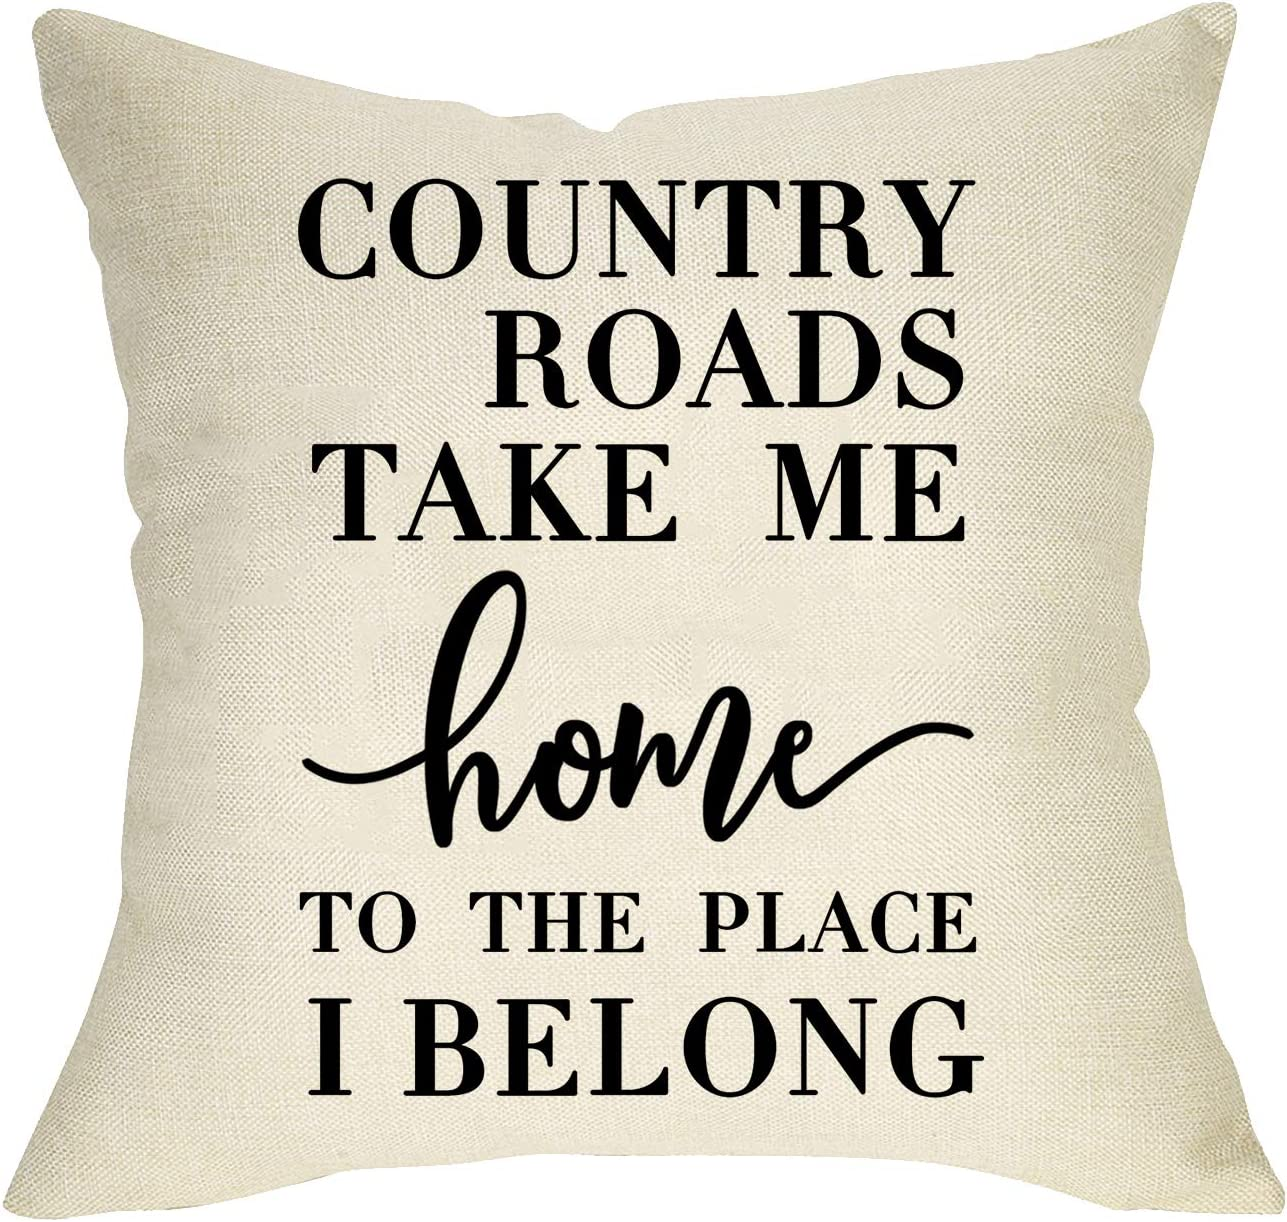 Softxpp Rustic Farmhouse Decorative Throw Pillow Cover Country Roads Take Me Home to the Place I Belong Quotes, Christmas Home Cushion Case Decor Square Pillowcase Xmas Decoration for Sofa Couch 18x18